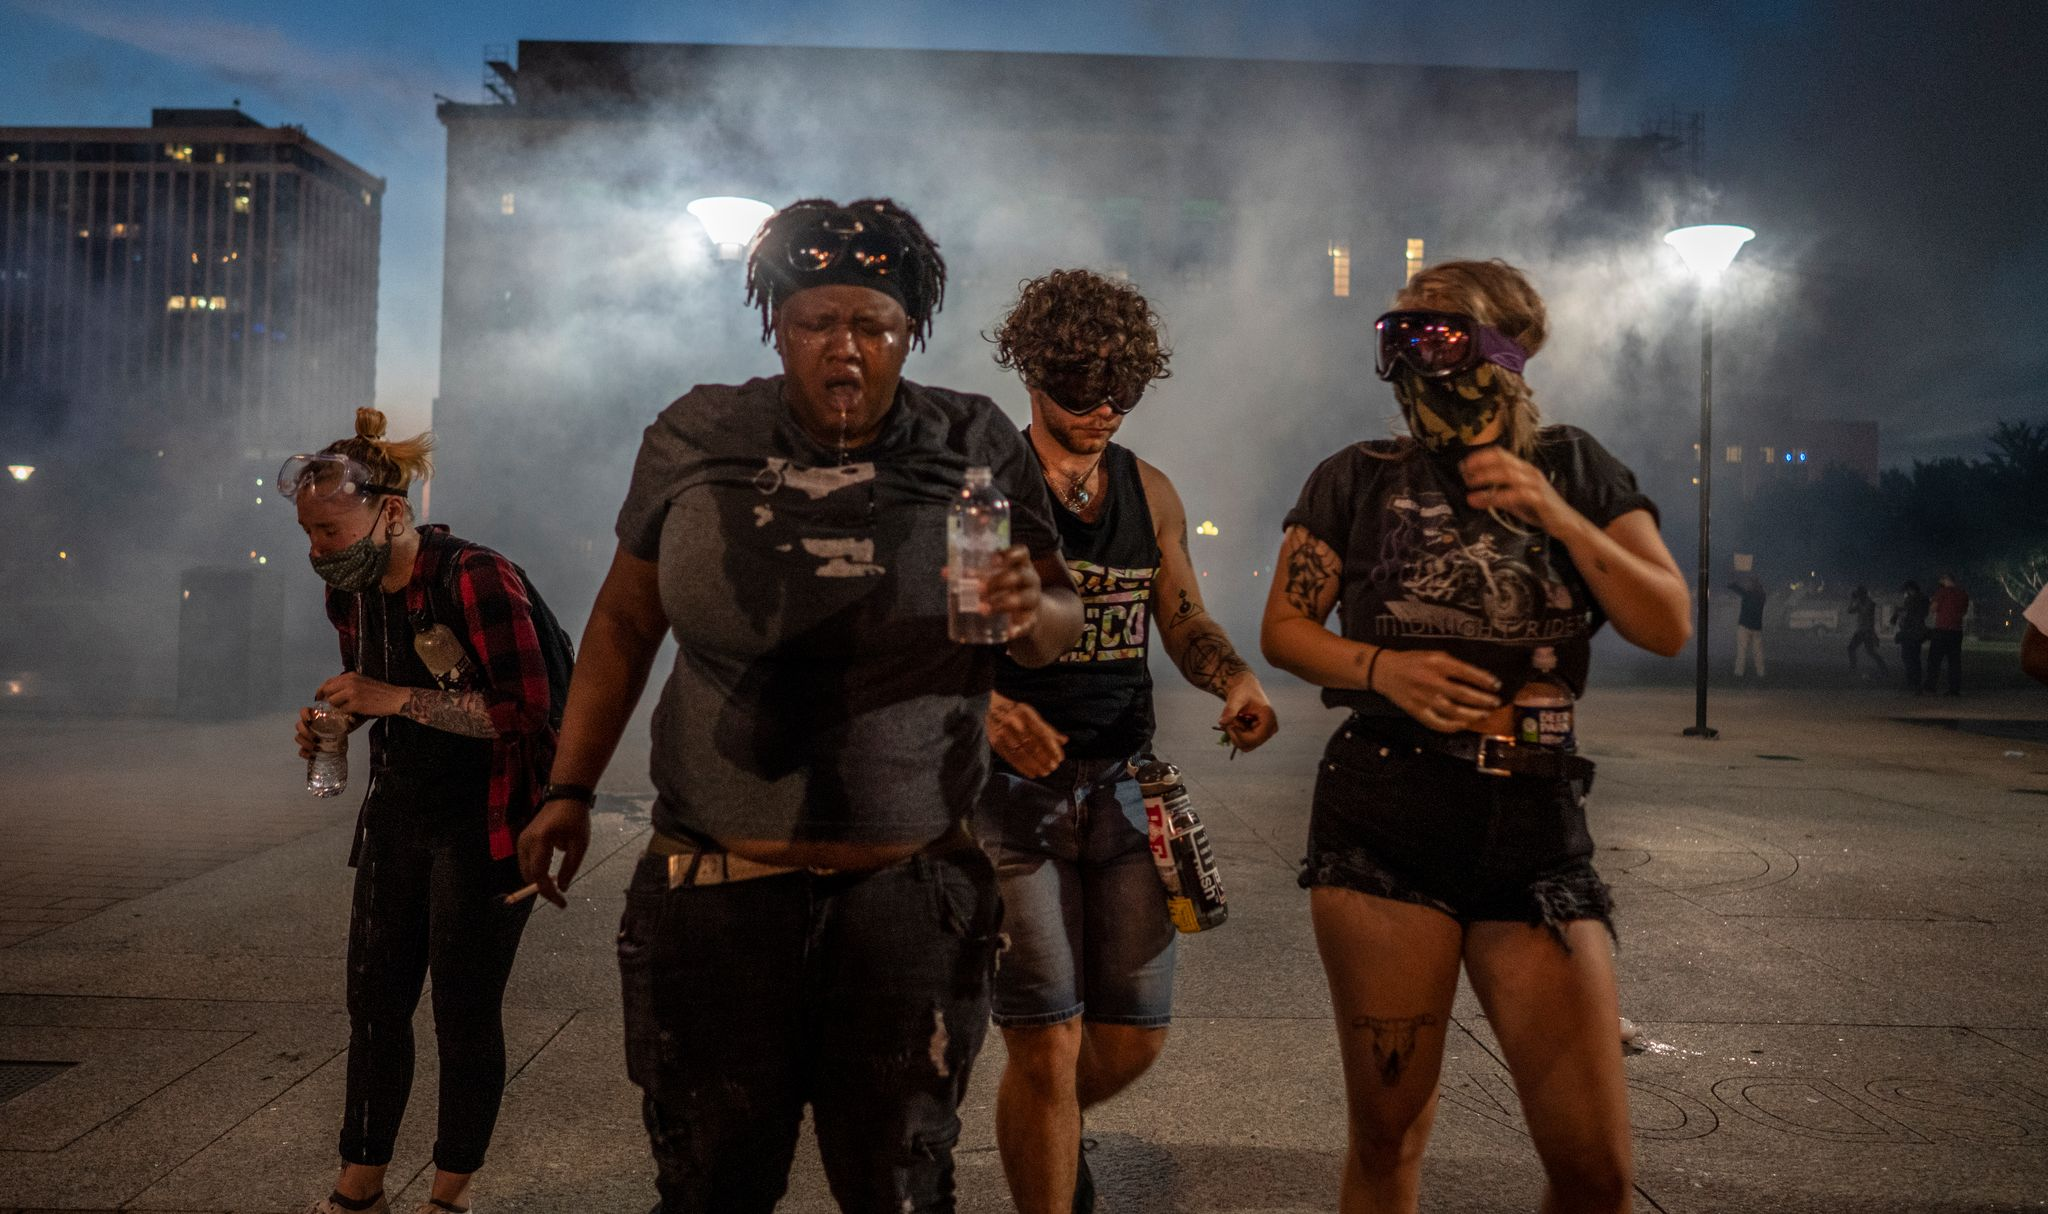 Nashville, Tenn., May 30 - A group of women walk away from the Nashville courthouse after being in a crowd of protestors on whom tear gas was used. (Photo: John Partipilo)